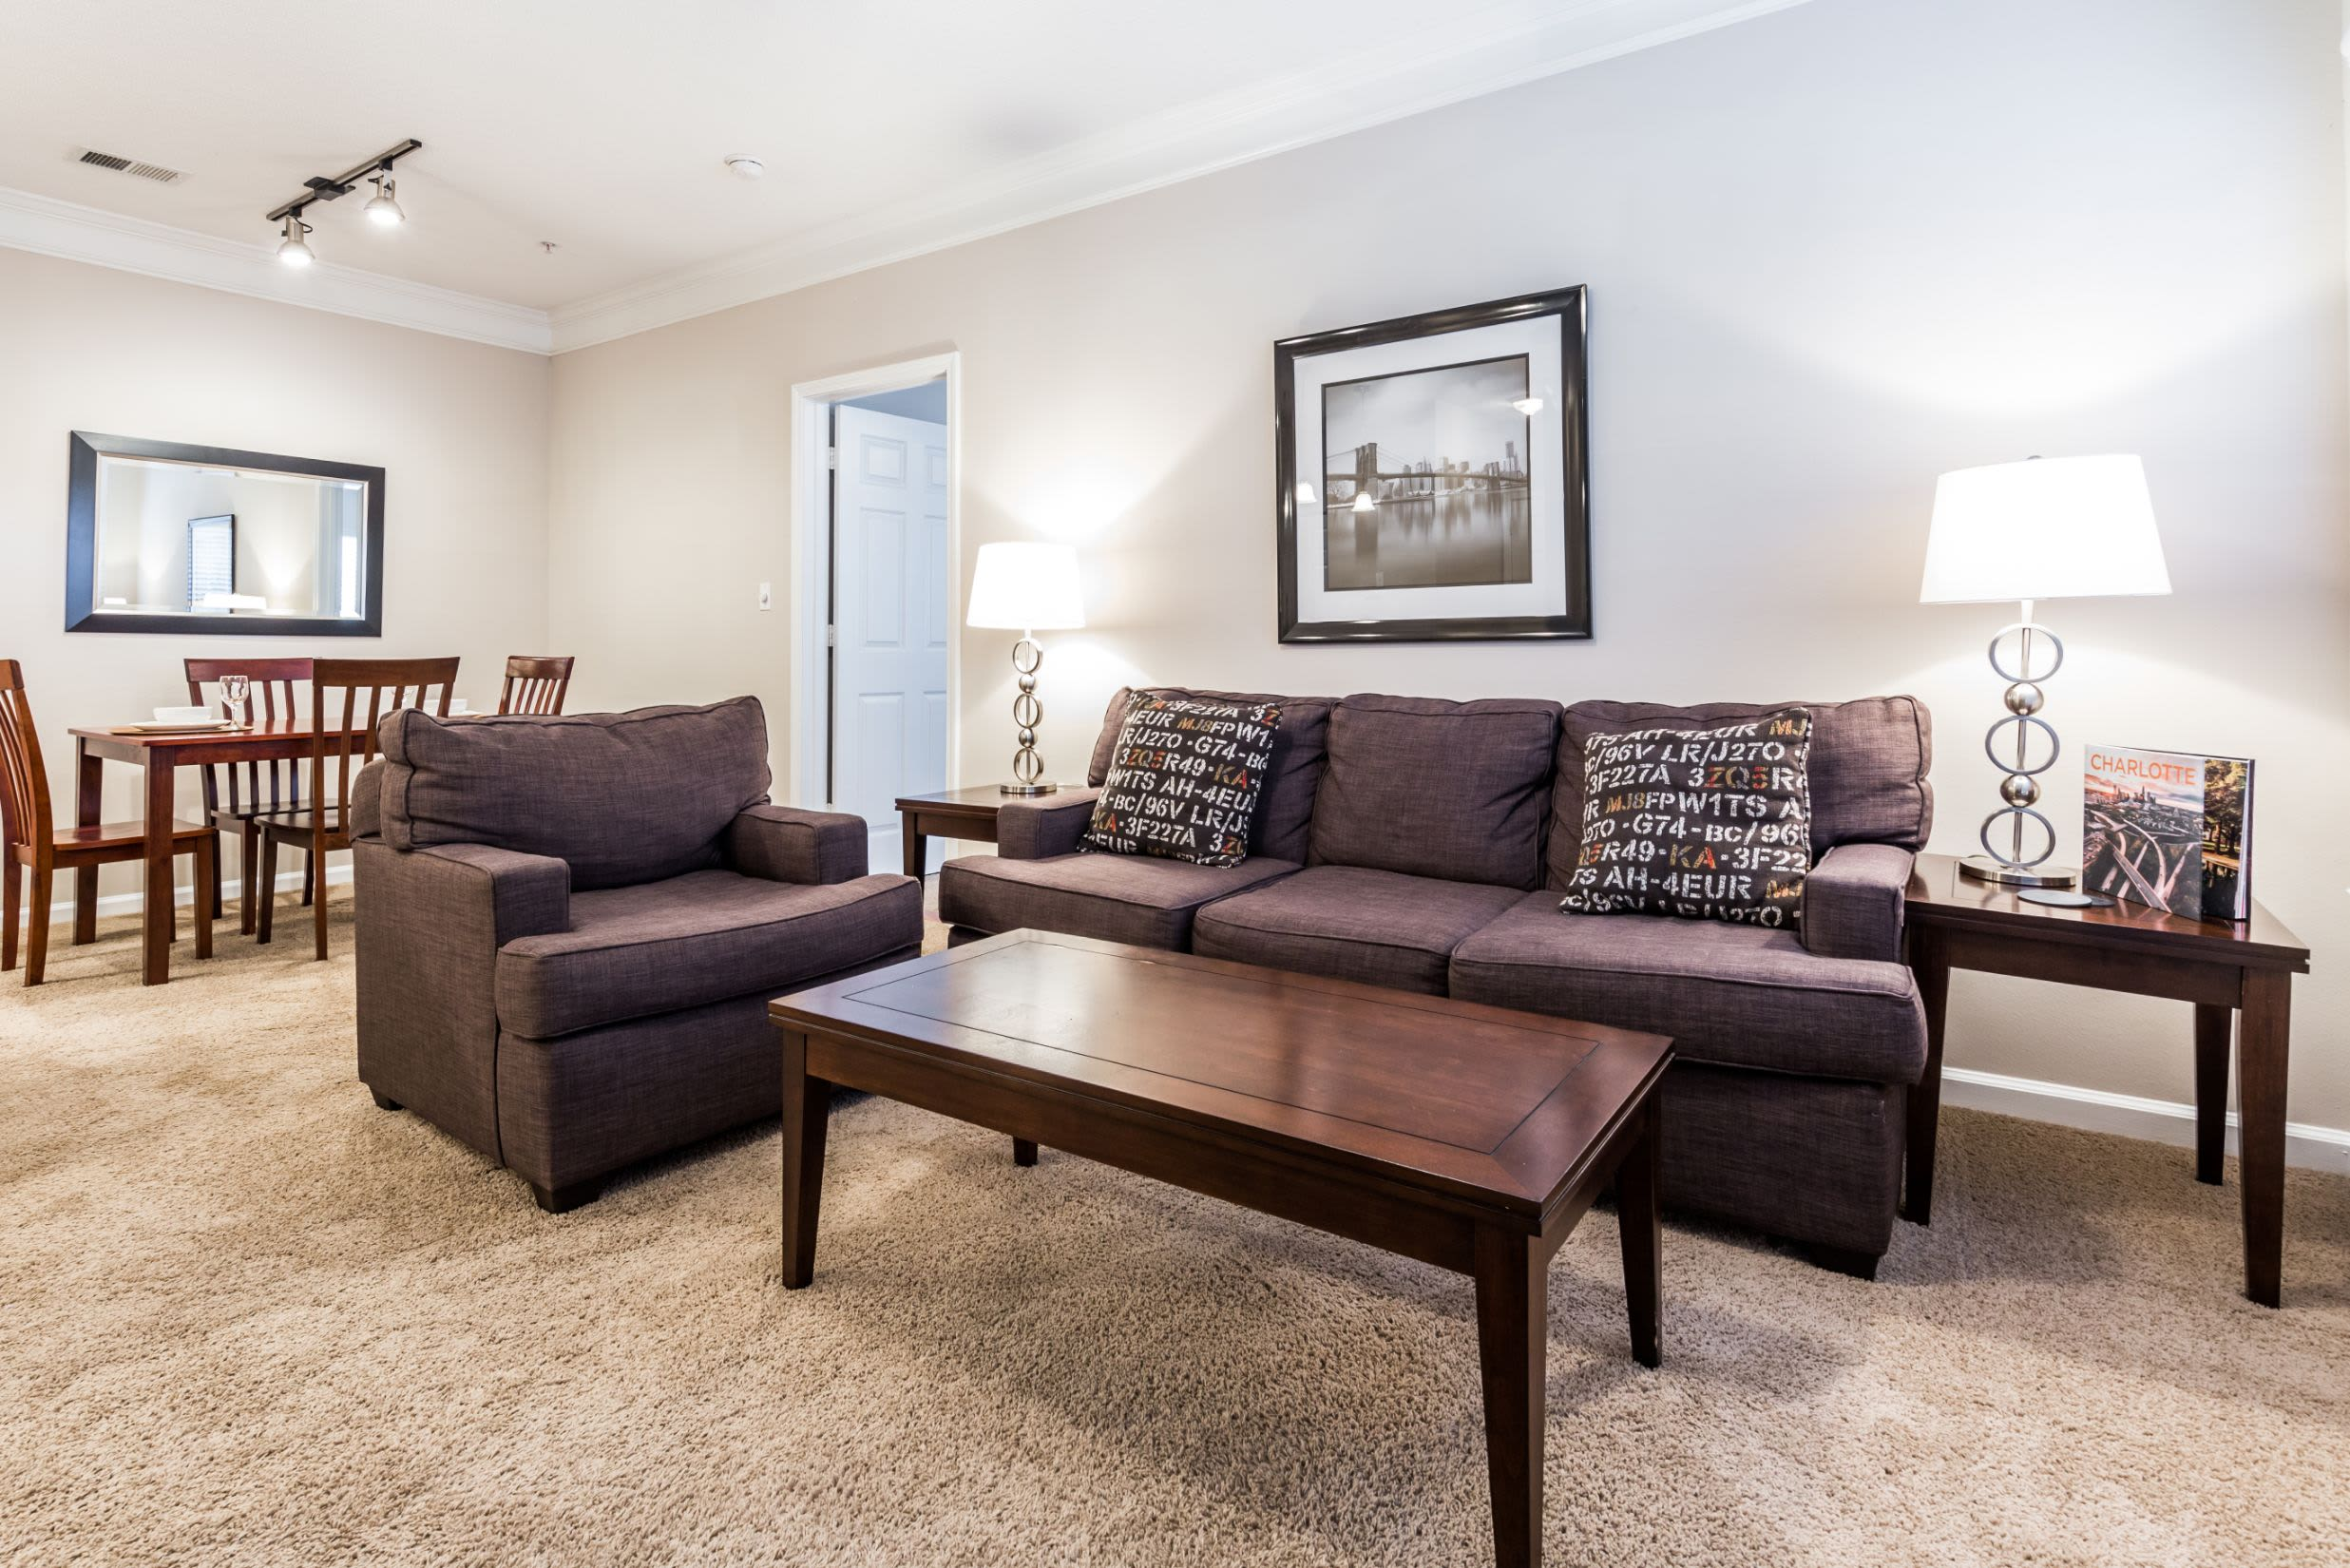 Living area with carpeted floors at The Preserve at Ballantyne Commons in Charlotte, North Carolina